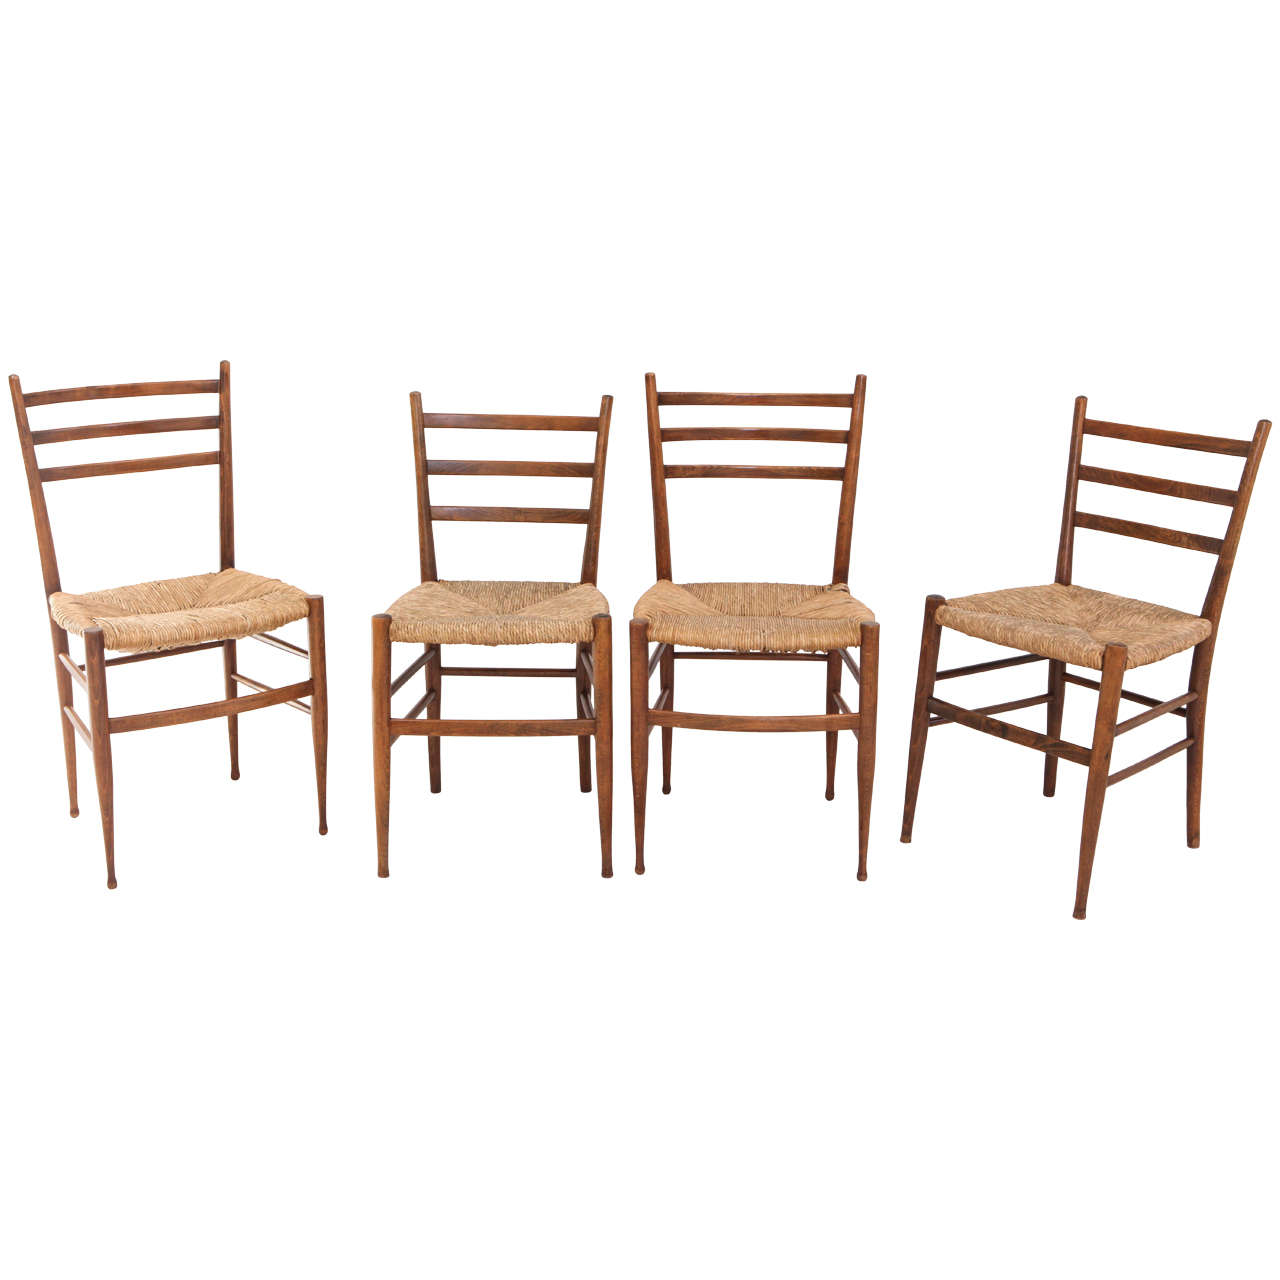 Marvelous photograph of Set of Four Vintage Italian Dining Chairs with Rush Seats at 1stdibs with #462419 color and 1280x1280 pixels